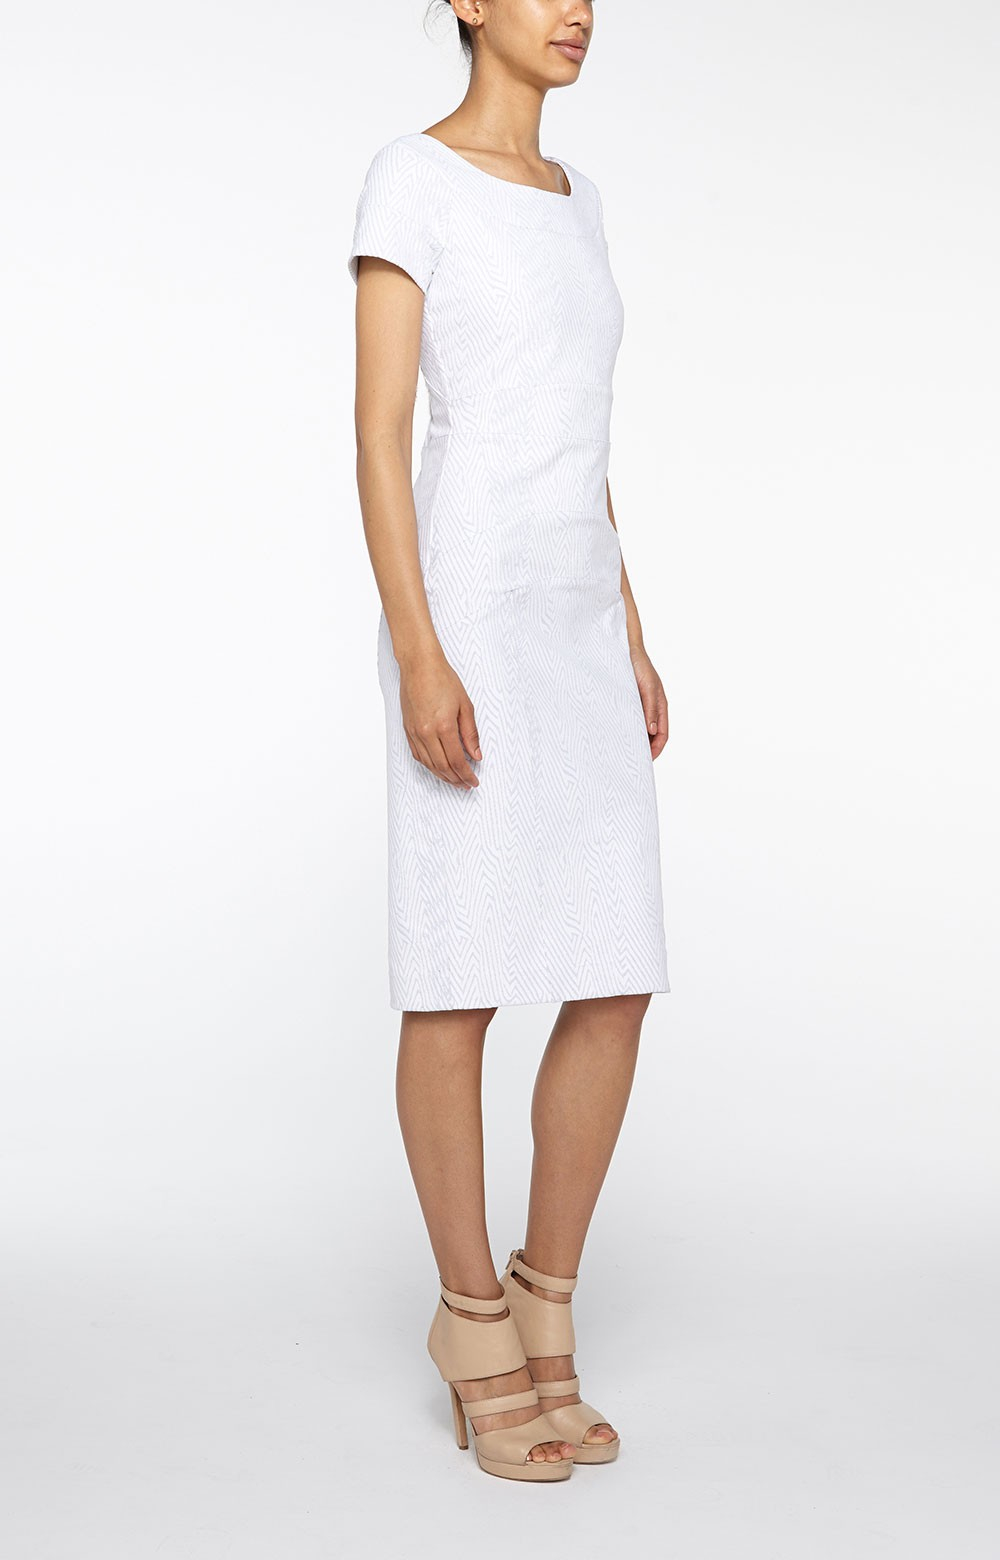 Lyst  Nicole Miller Karina Bodycon Dress in White